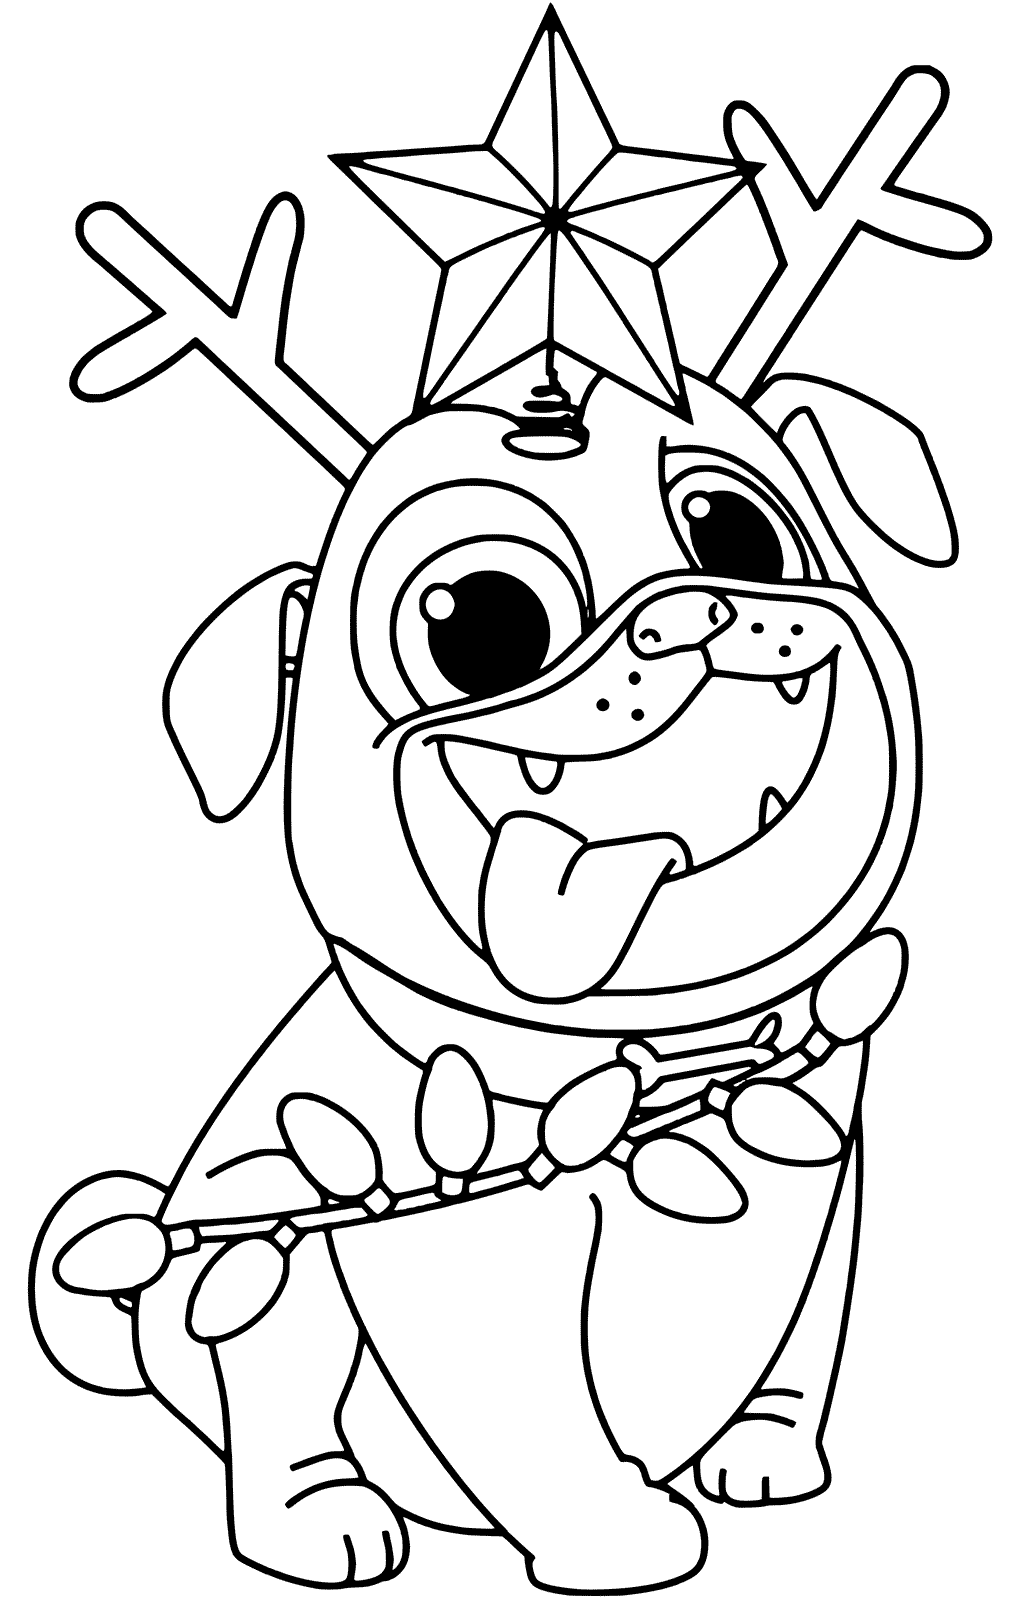 coloring pages to print dogs puppy dog pals coloring pages to download and print for free dogs pages print to coloring